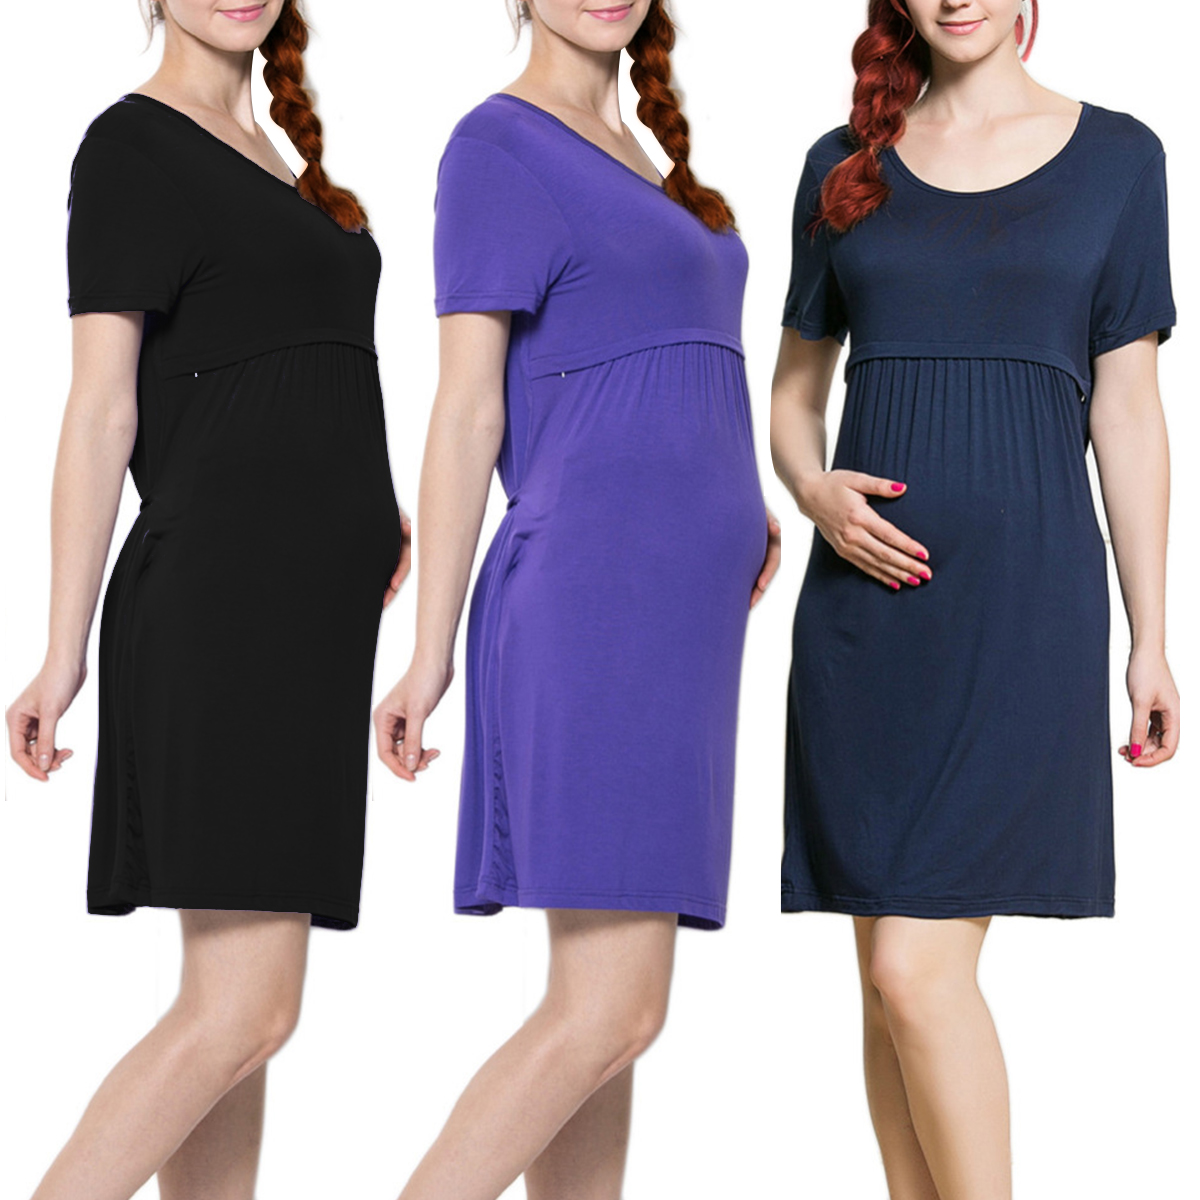 IAG-Maternity-&-Zippered-Nursing-Dress-Hero-1200×1200